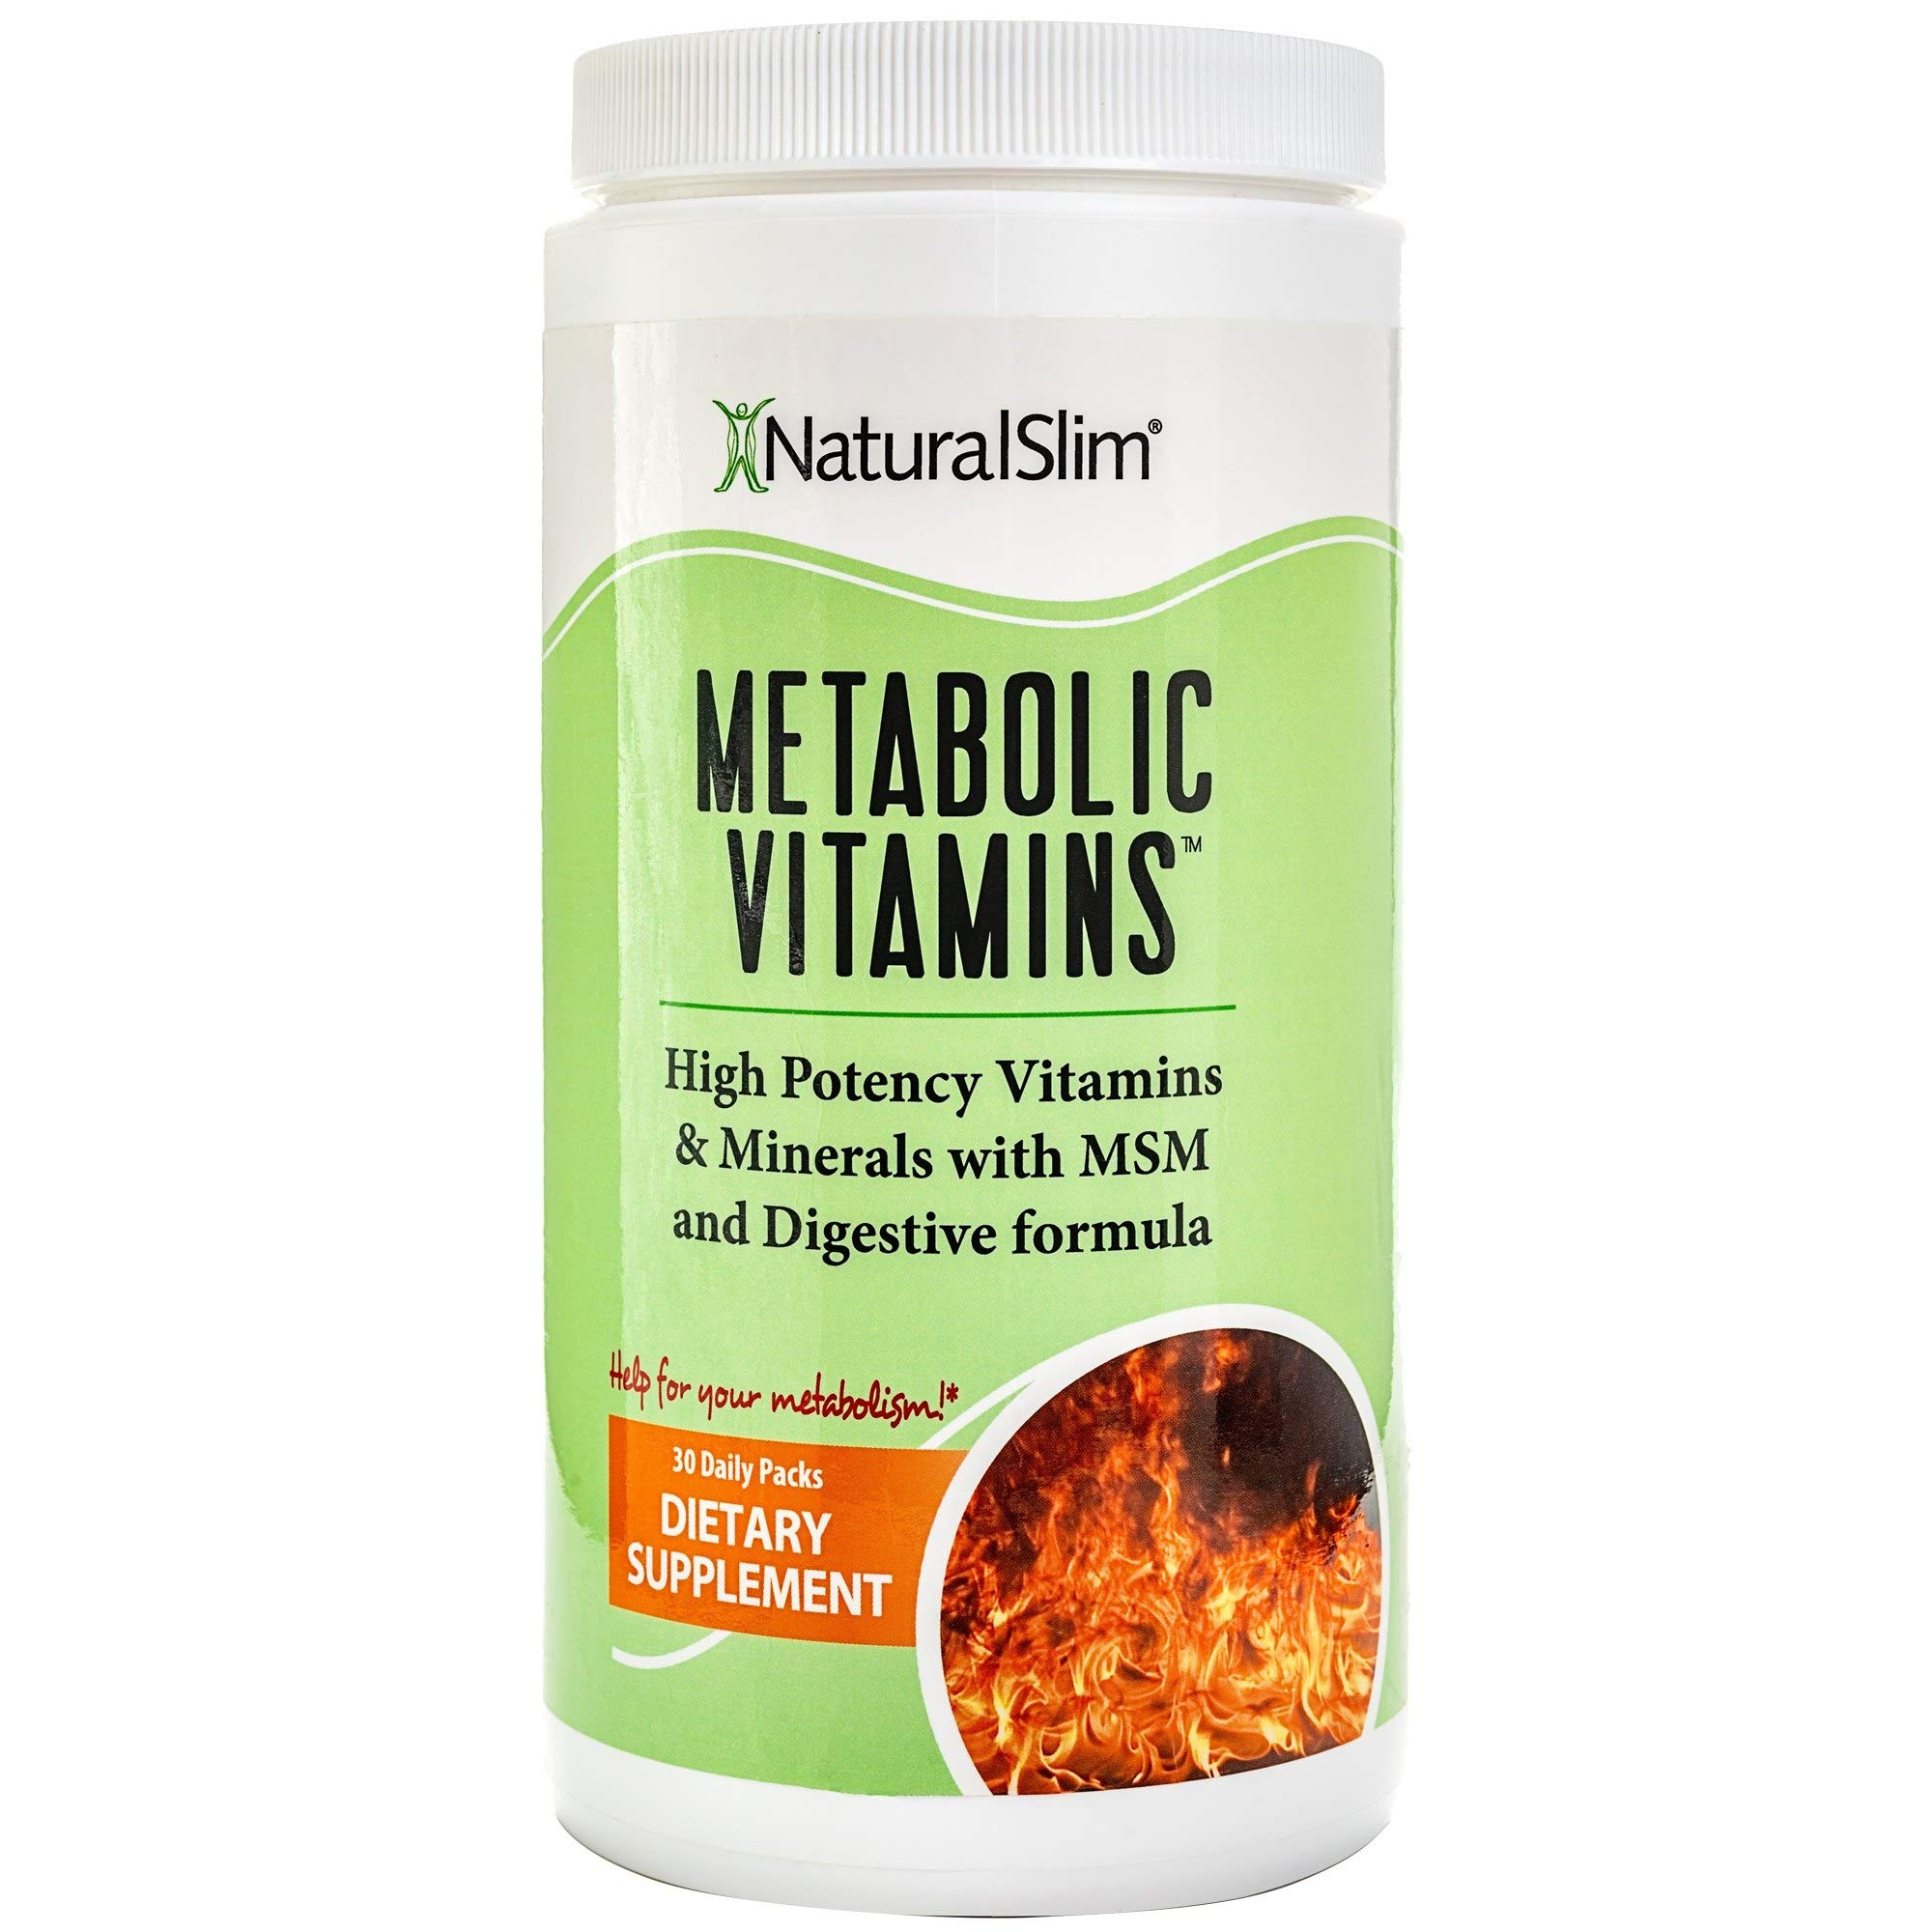 NaturalSlim Metabolic Vitamins, Formulated by Award Winning Metabolism and Weight Loss Specialist- High Potency Vitamins and Minerals with MSM and Digestive Formula